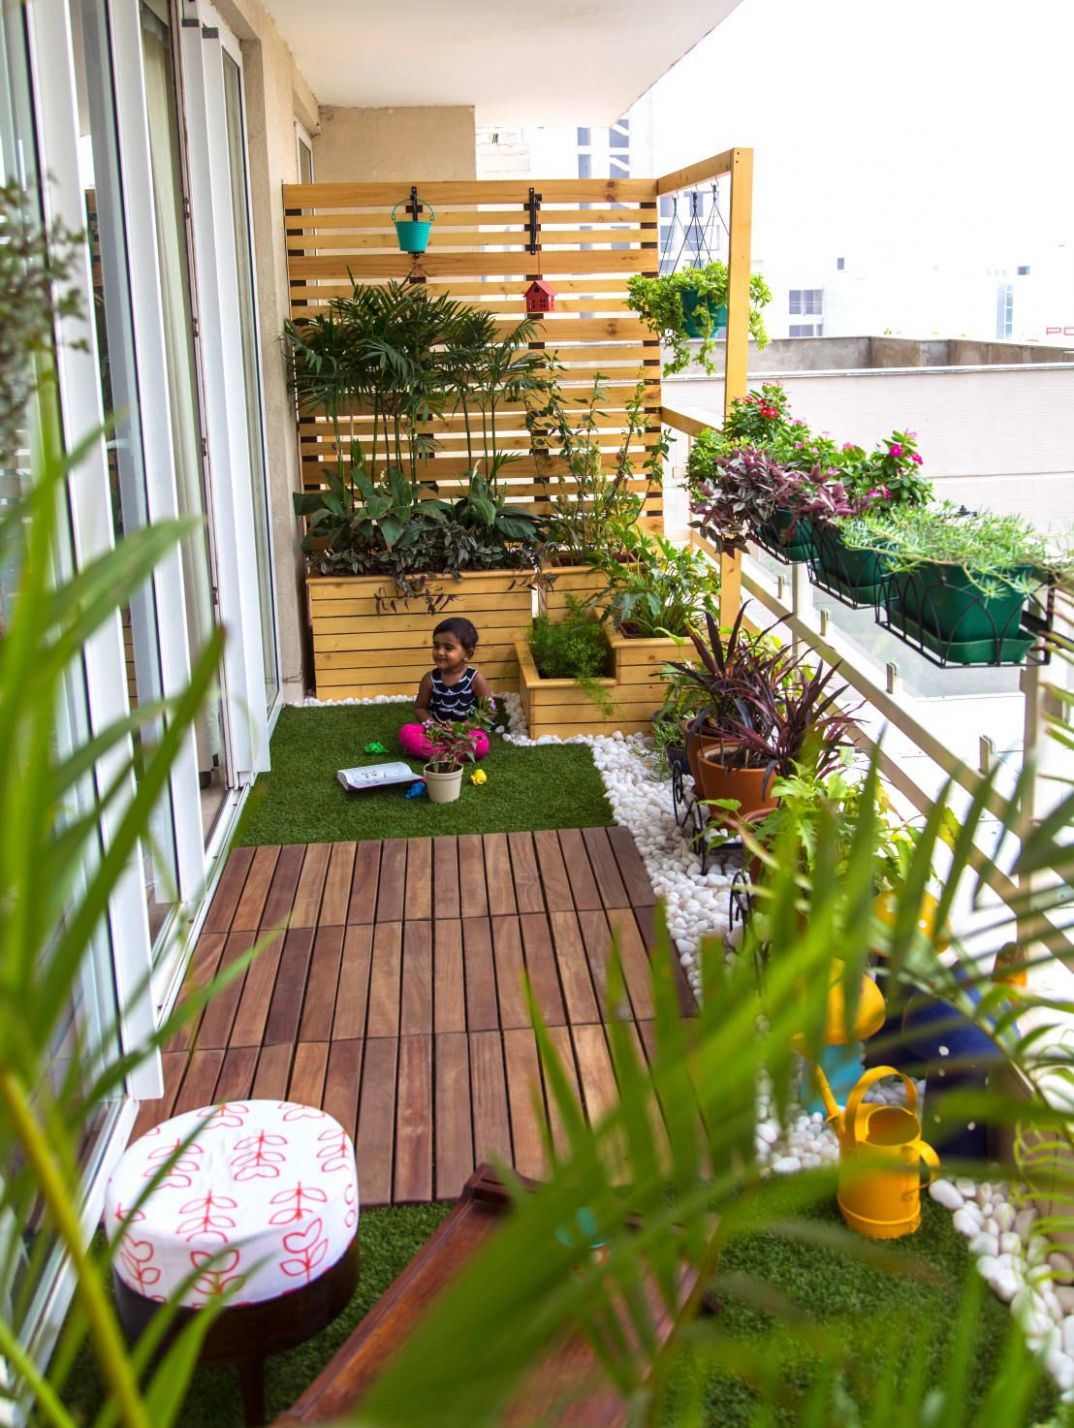 12 Smart Balcony Garden Ideas That are Awesome | Small balcony ..